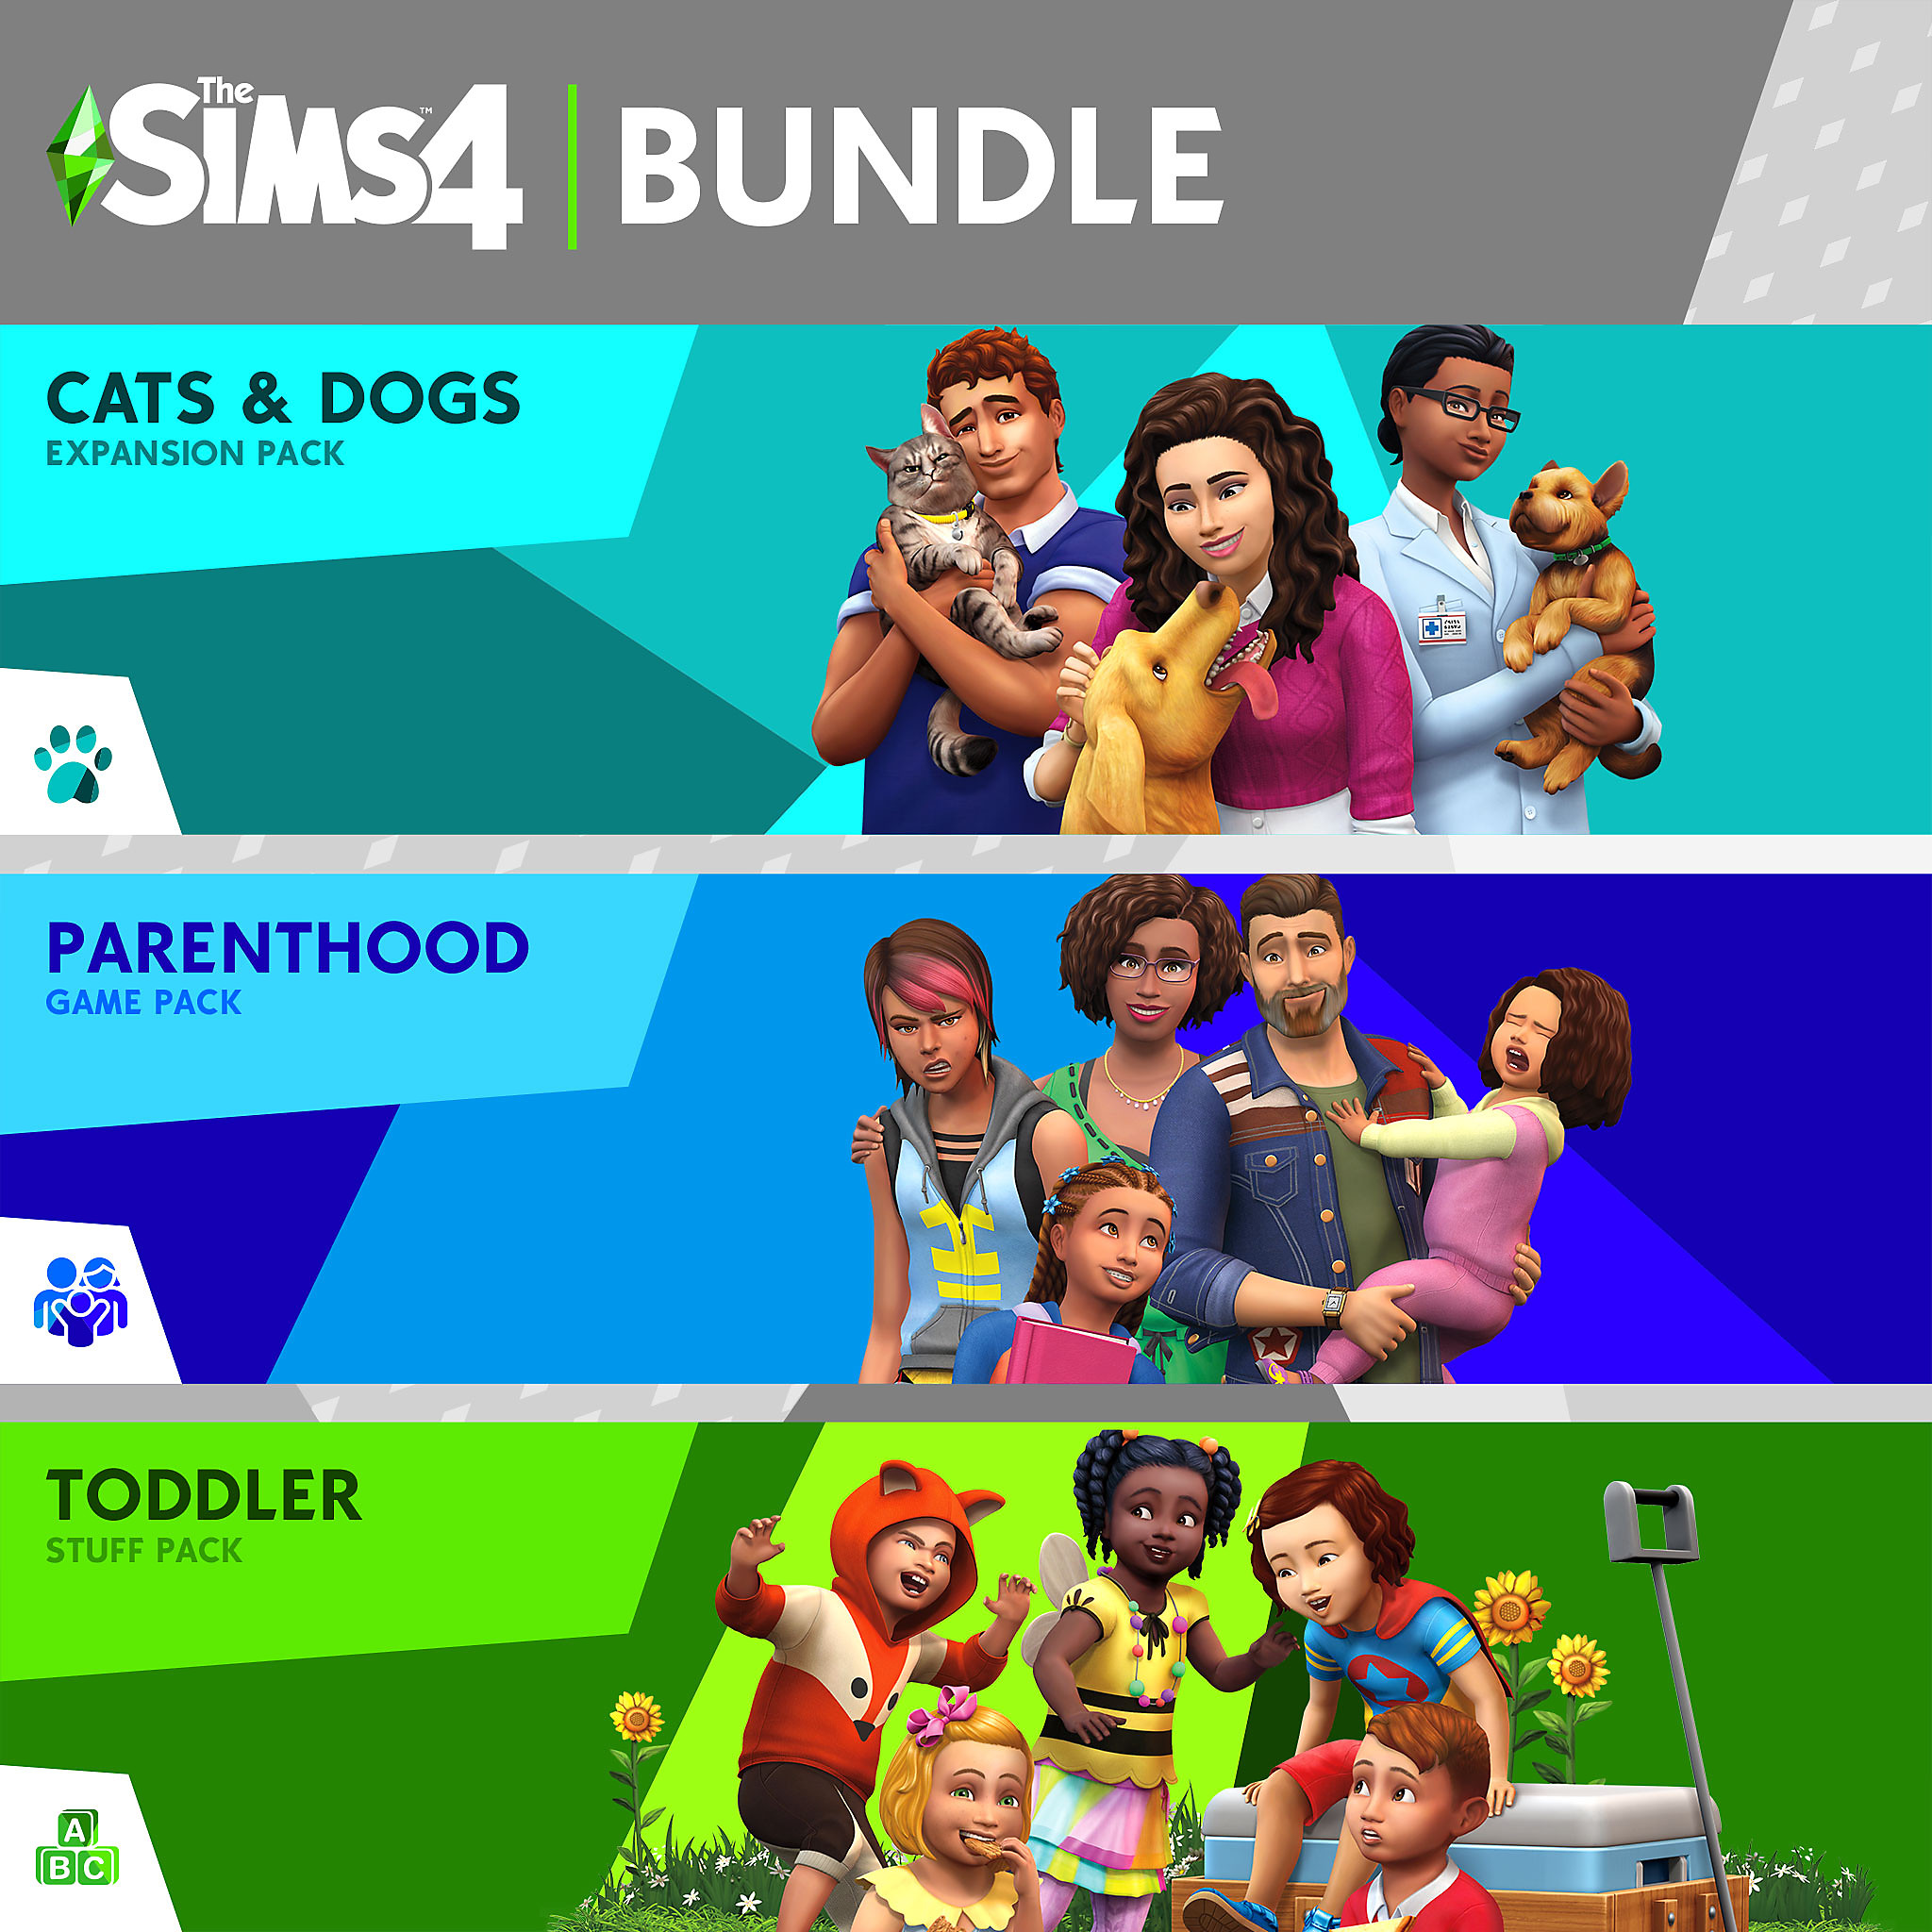 Cats & Dogs, Parenthood, Toddler Stuff Bundle